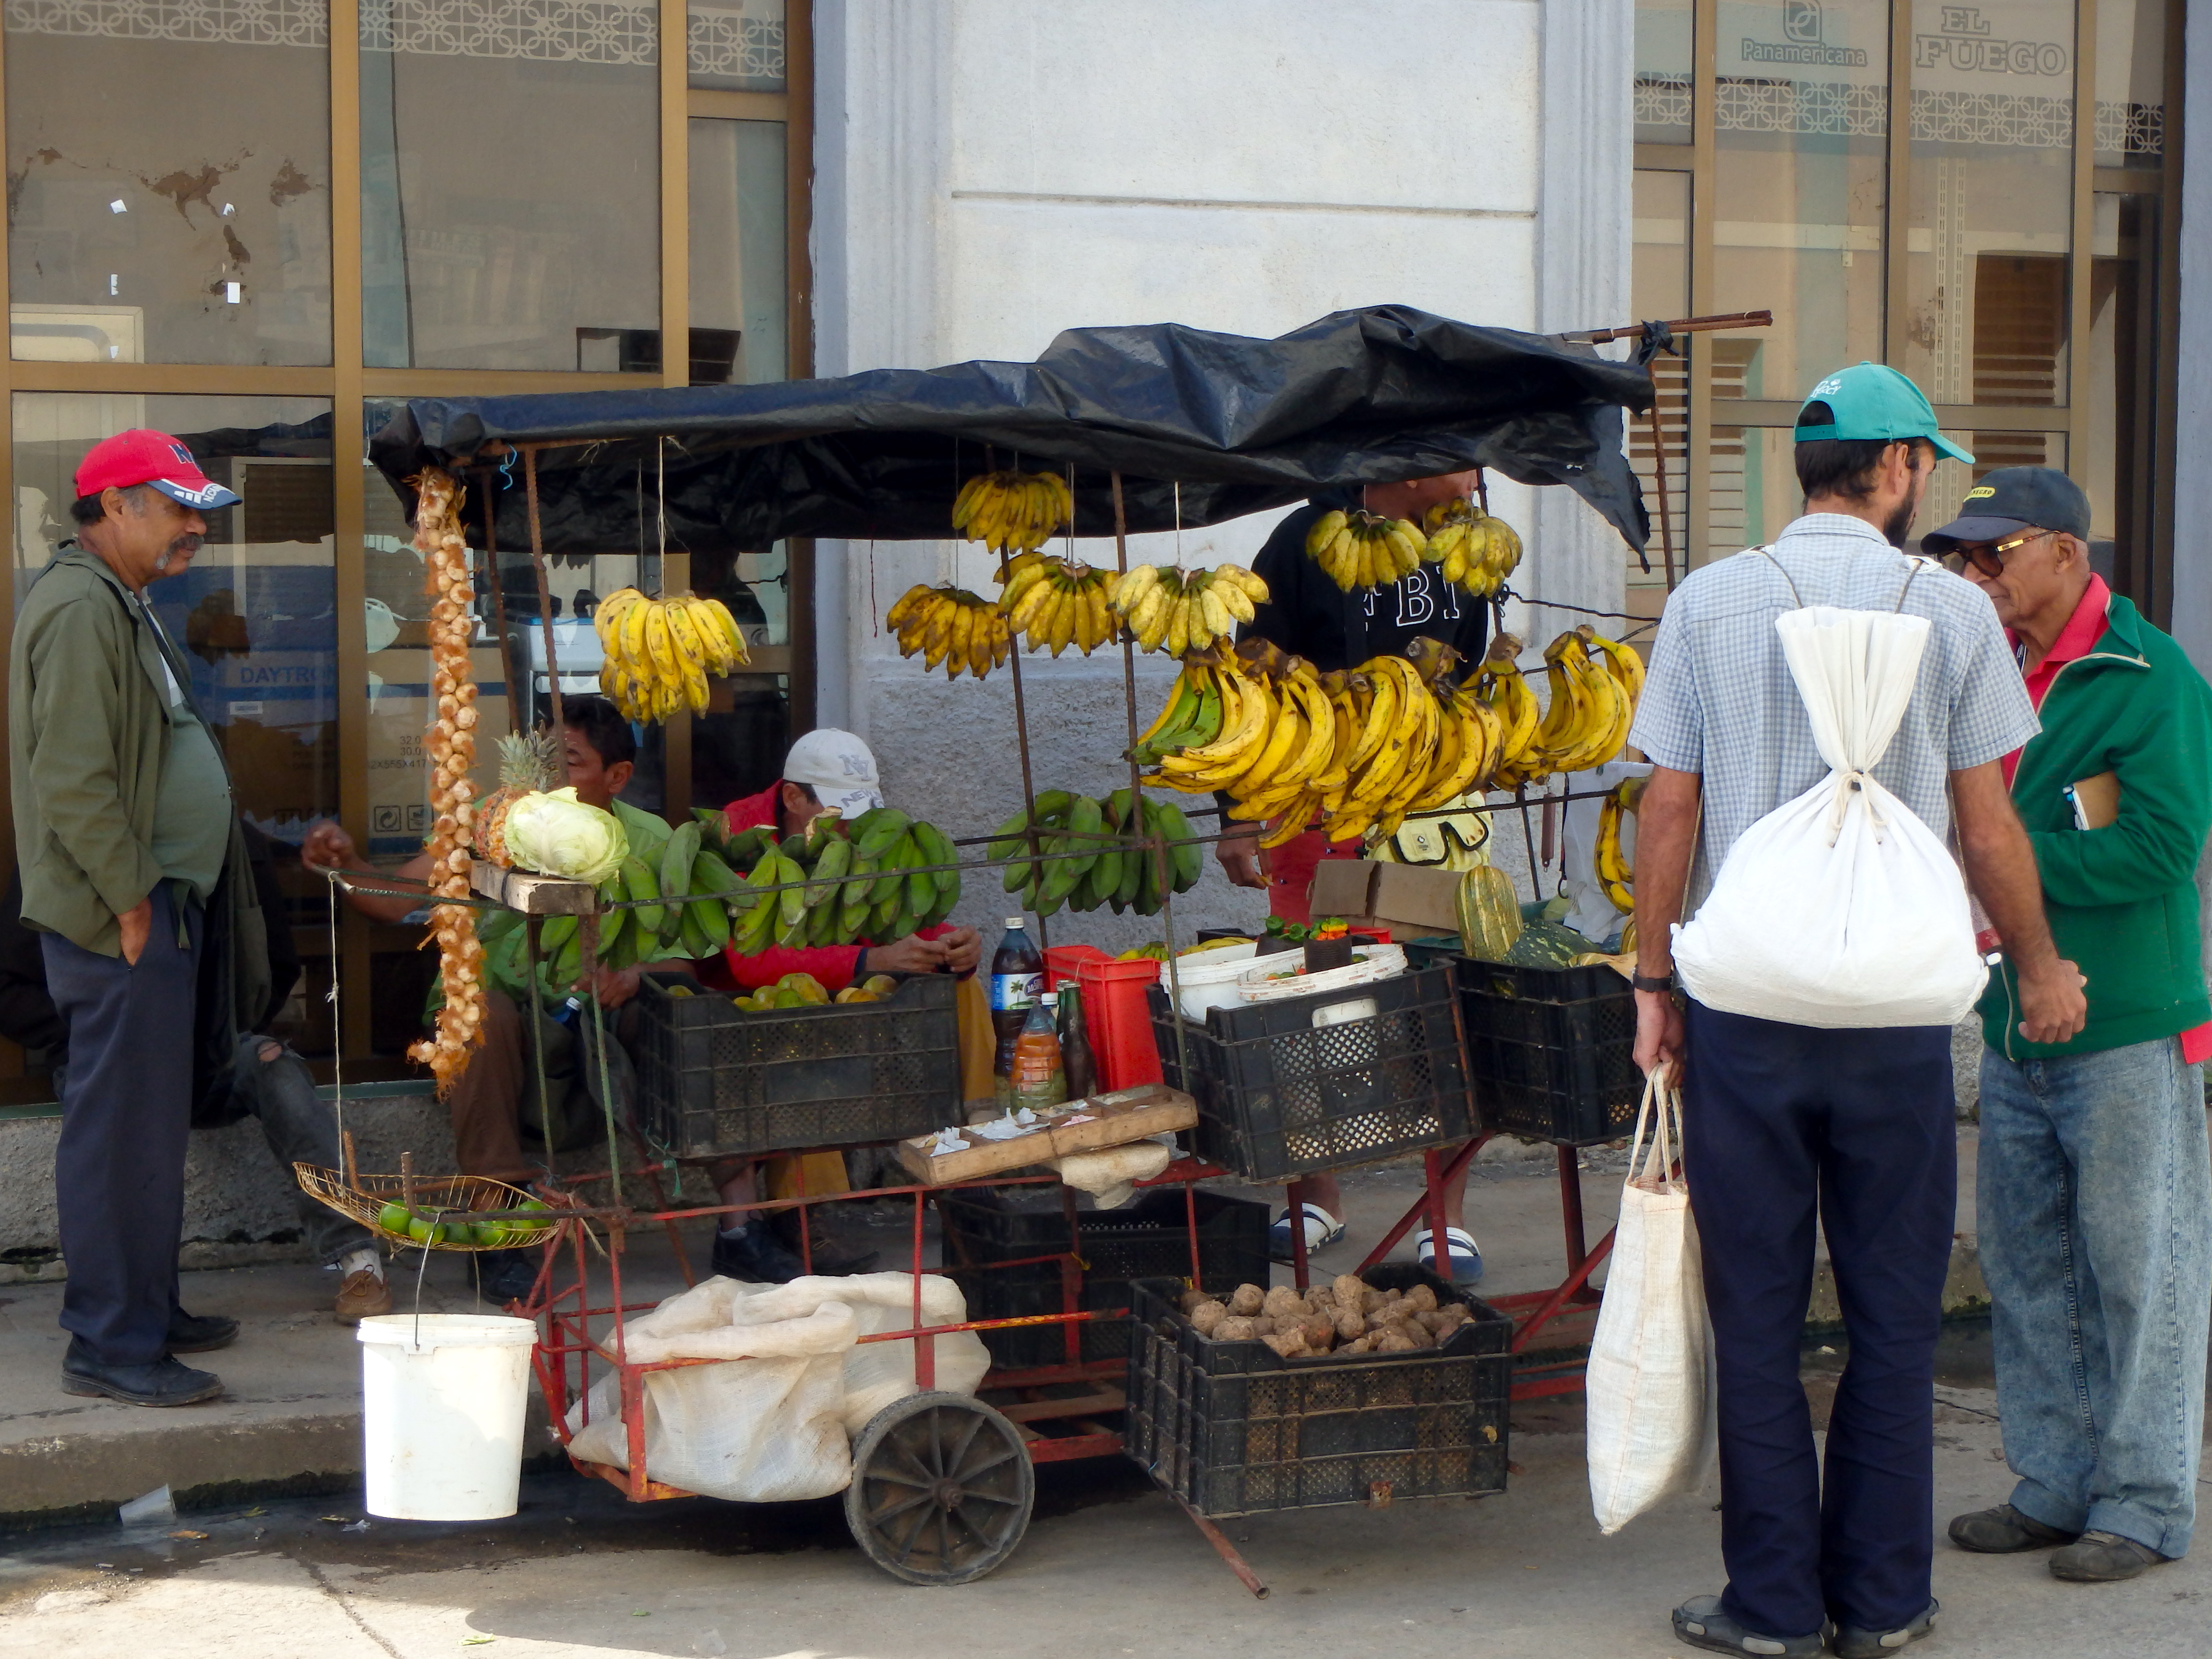 Matanzas fruit stand places to visit in cuba travel blog for solo females is cuba safe for women travellers?